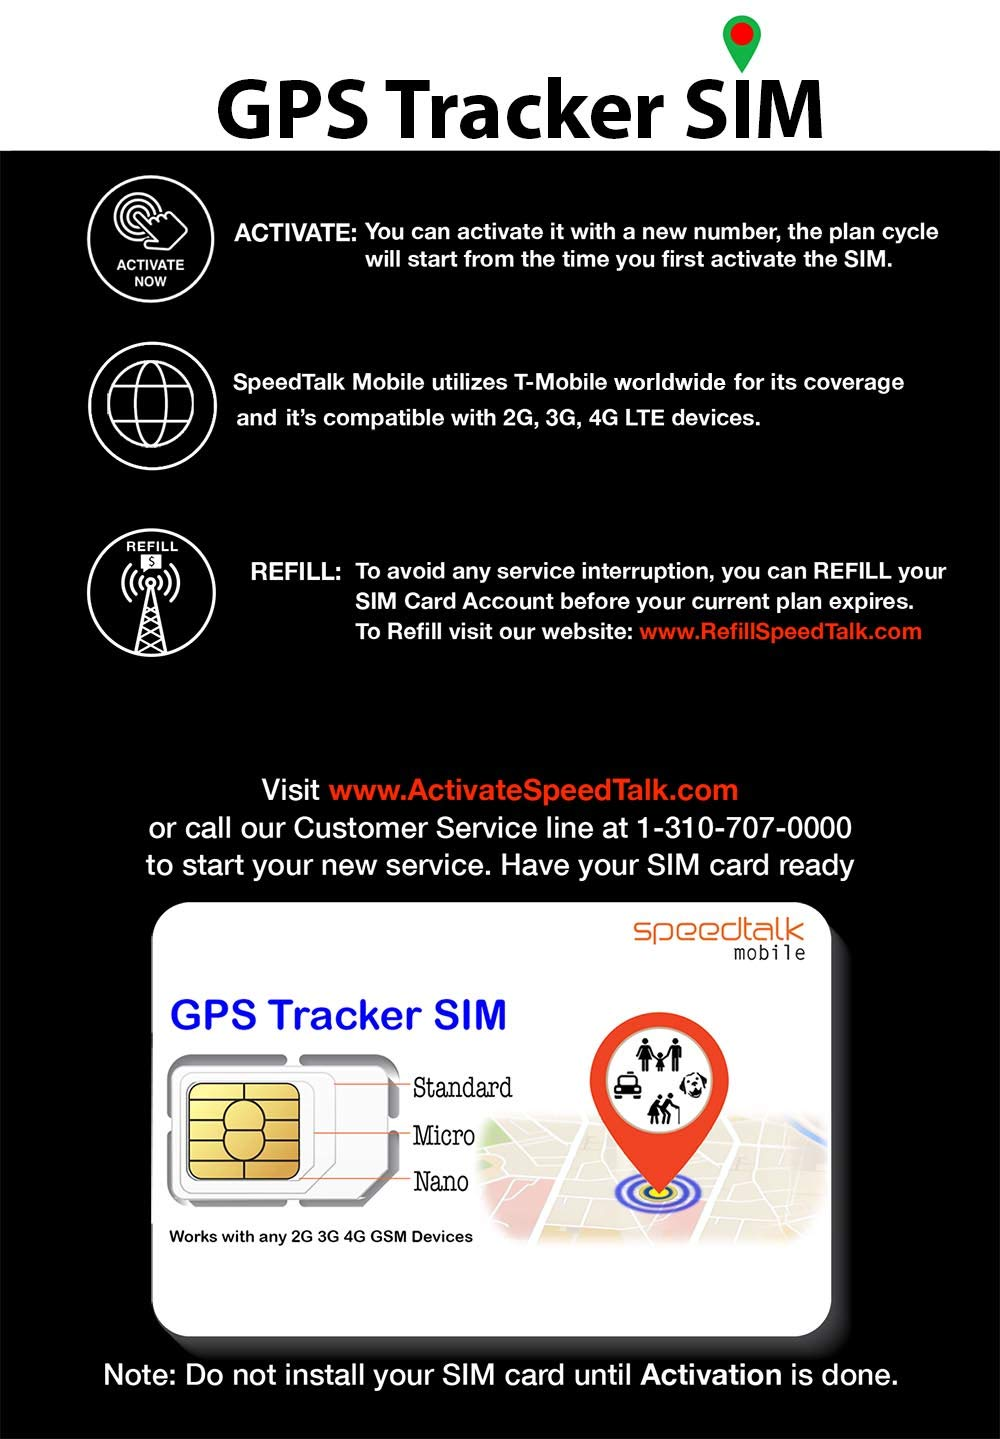 GPS Tracker Triple Cut SIM Card Starter Kit - No Contract (Universal SIM: Standard, Micro, Nano) For 2G 3G 4G Devices - Global Coverage